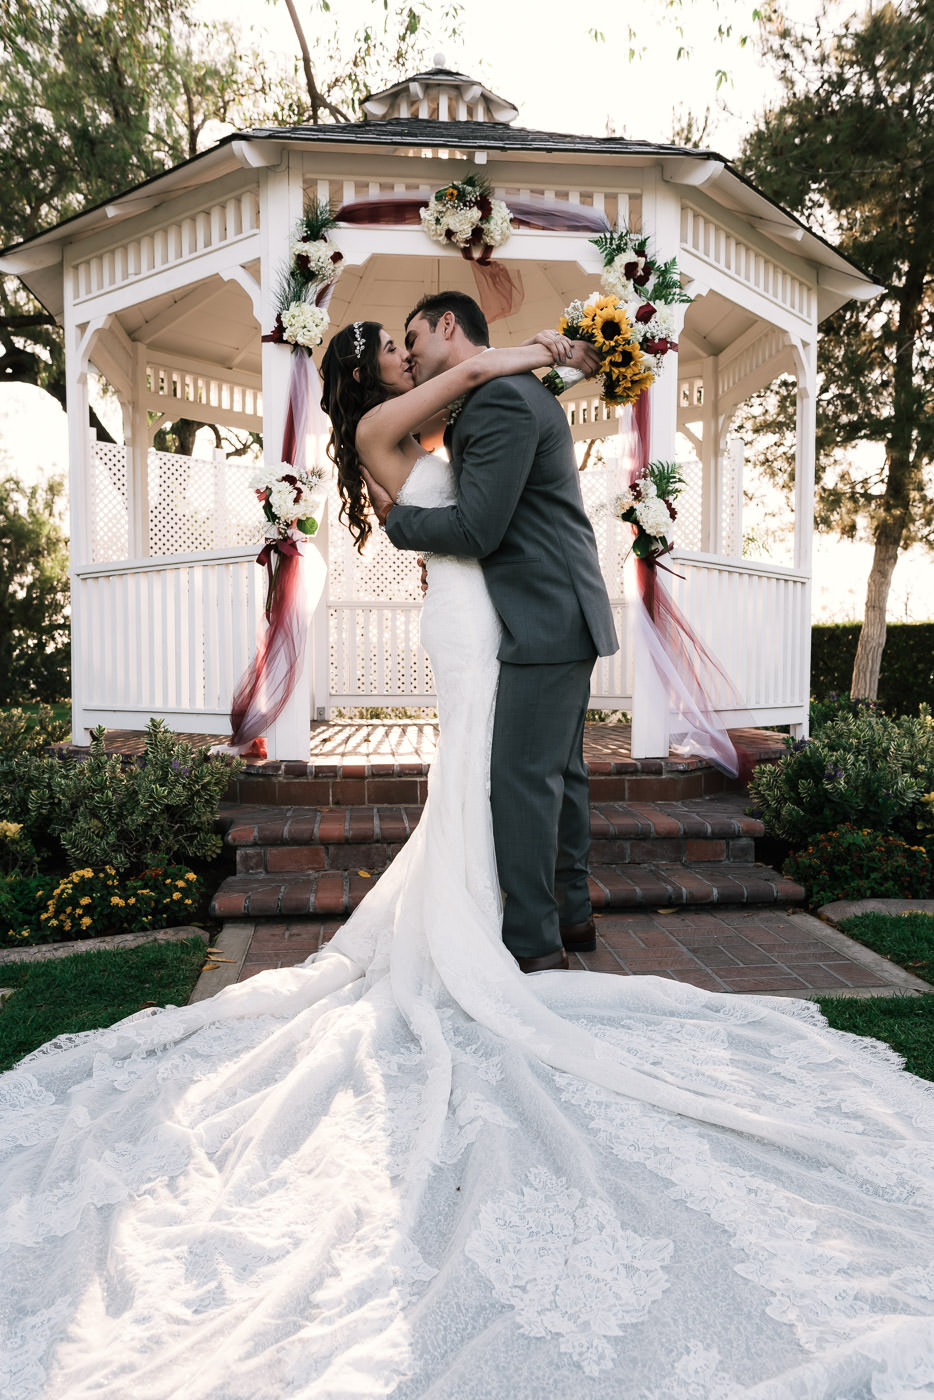 Placentia wedding photographer captures a romantic kiss at the Alta Vista Country Club.